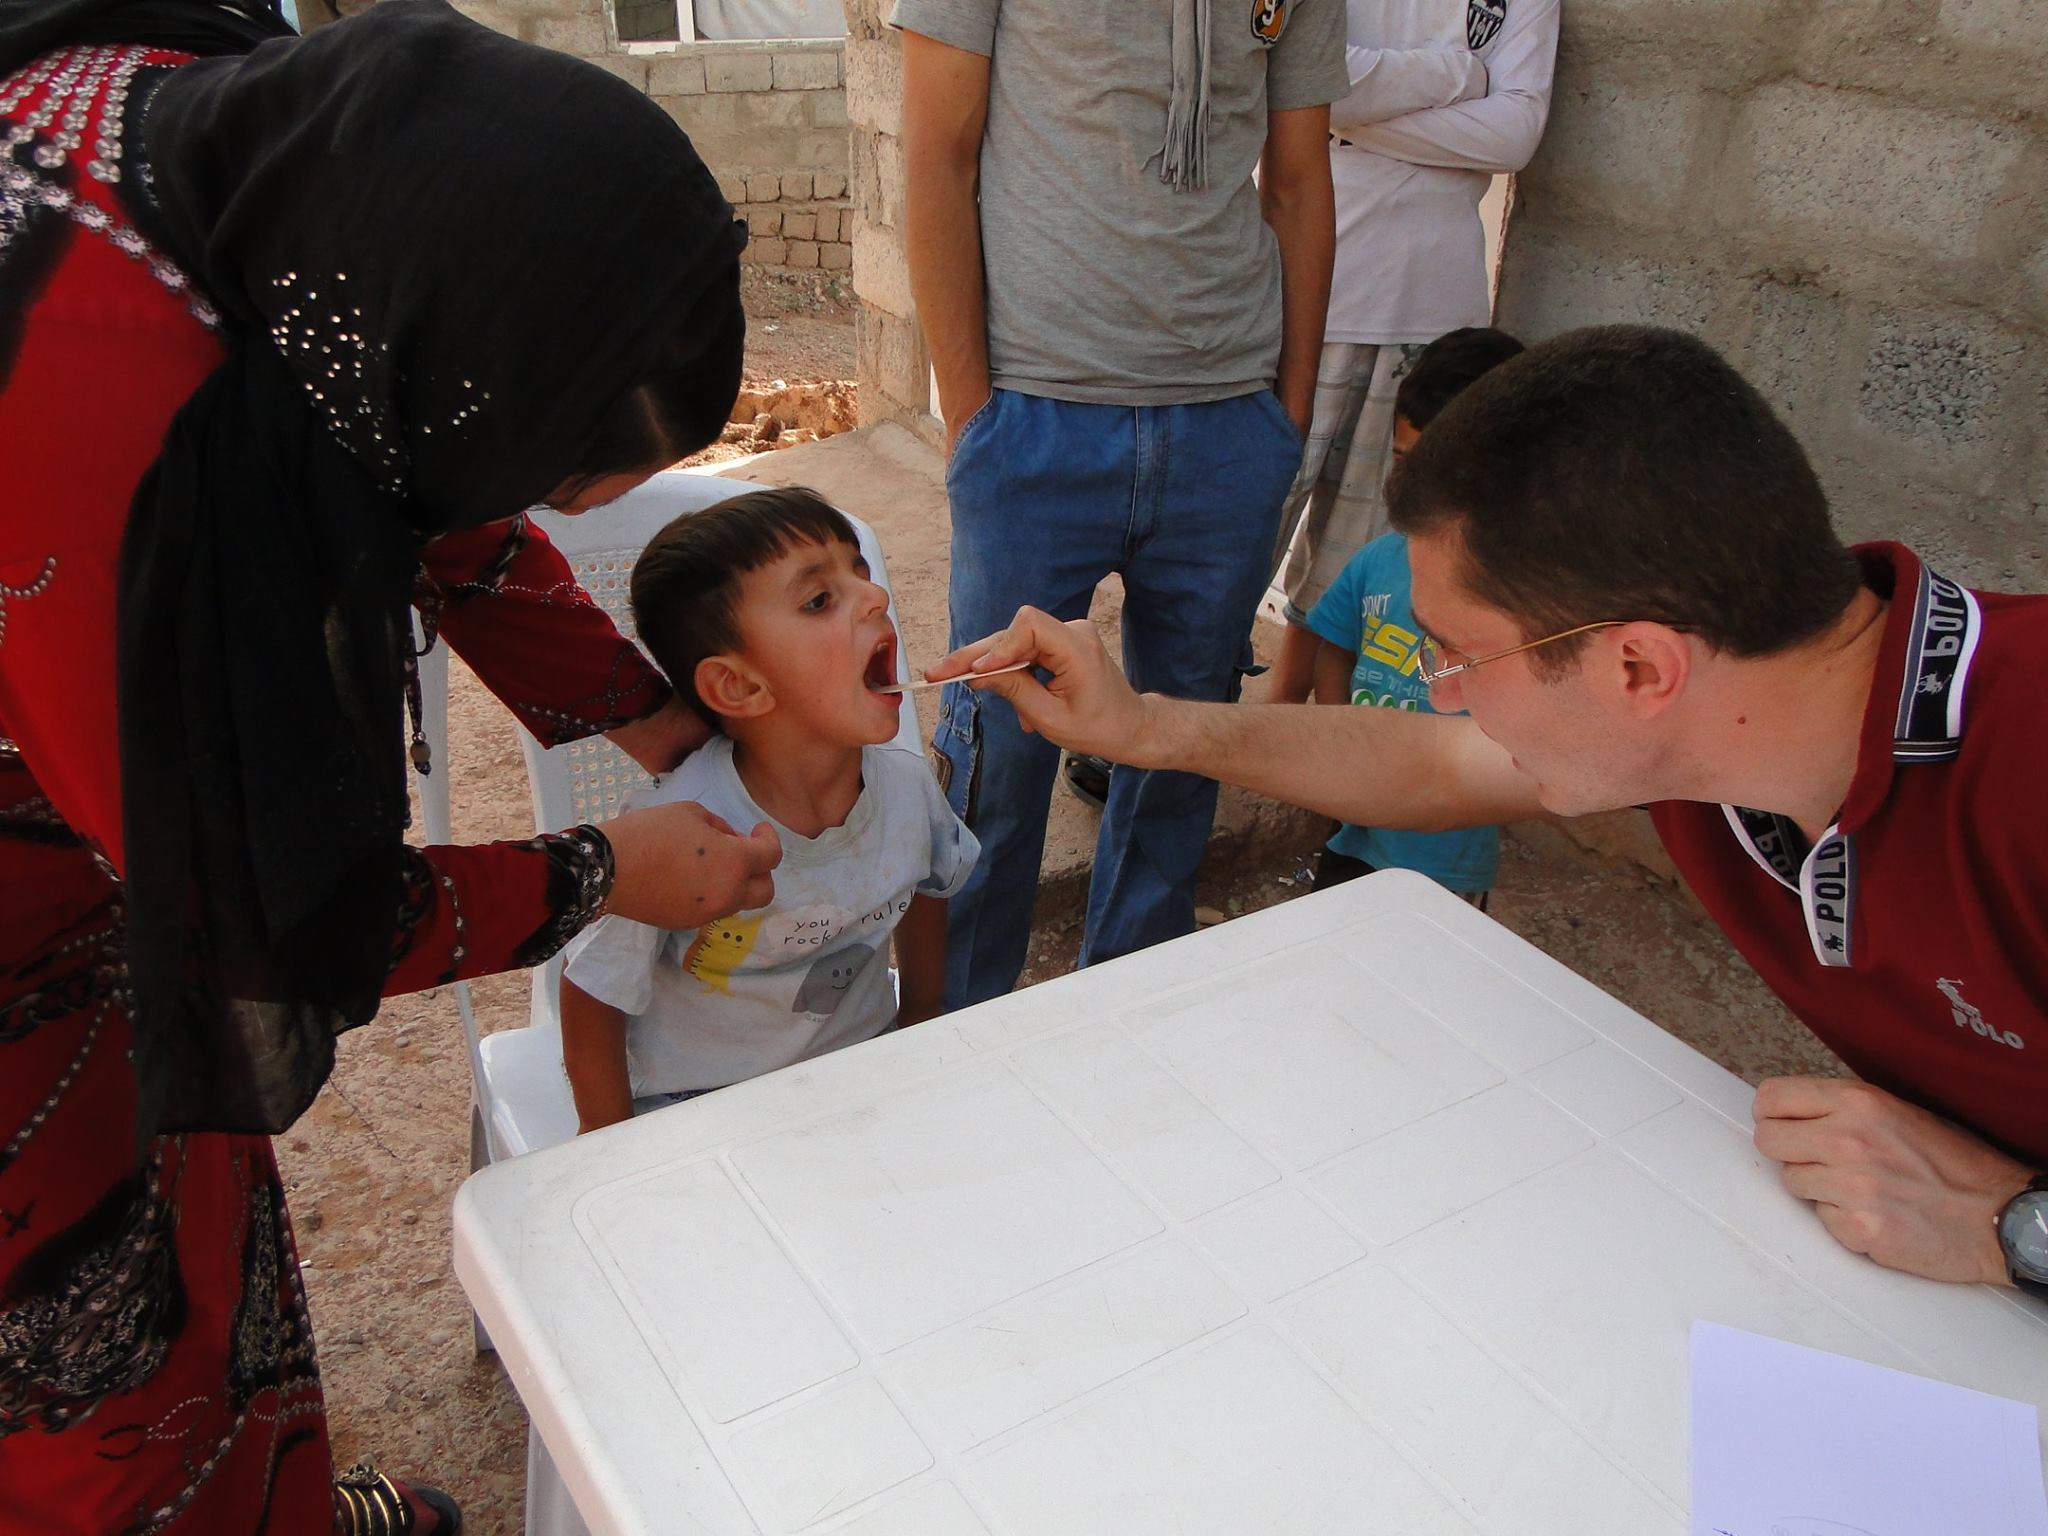 Iraqi refugees aided by Christian medical clinic on wheels